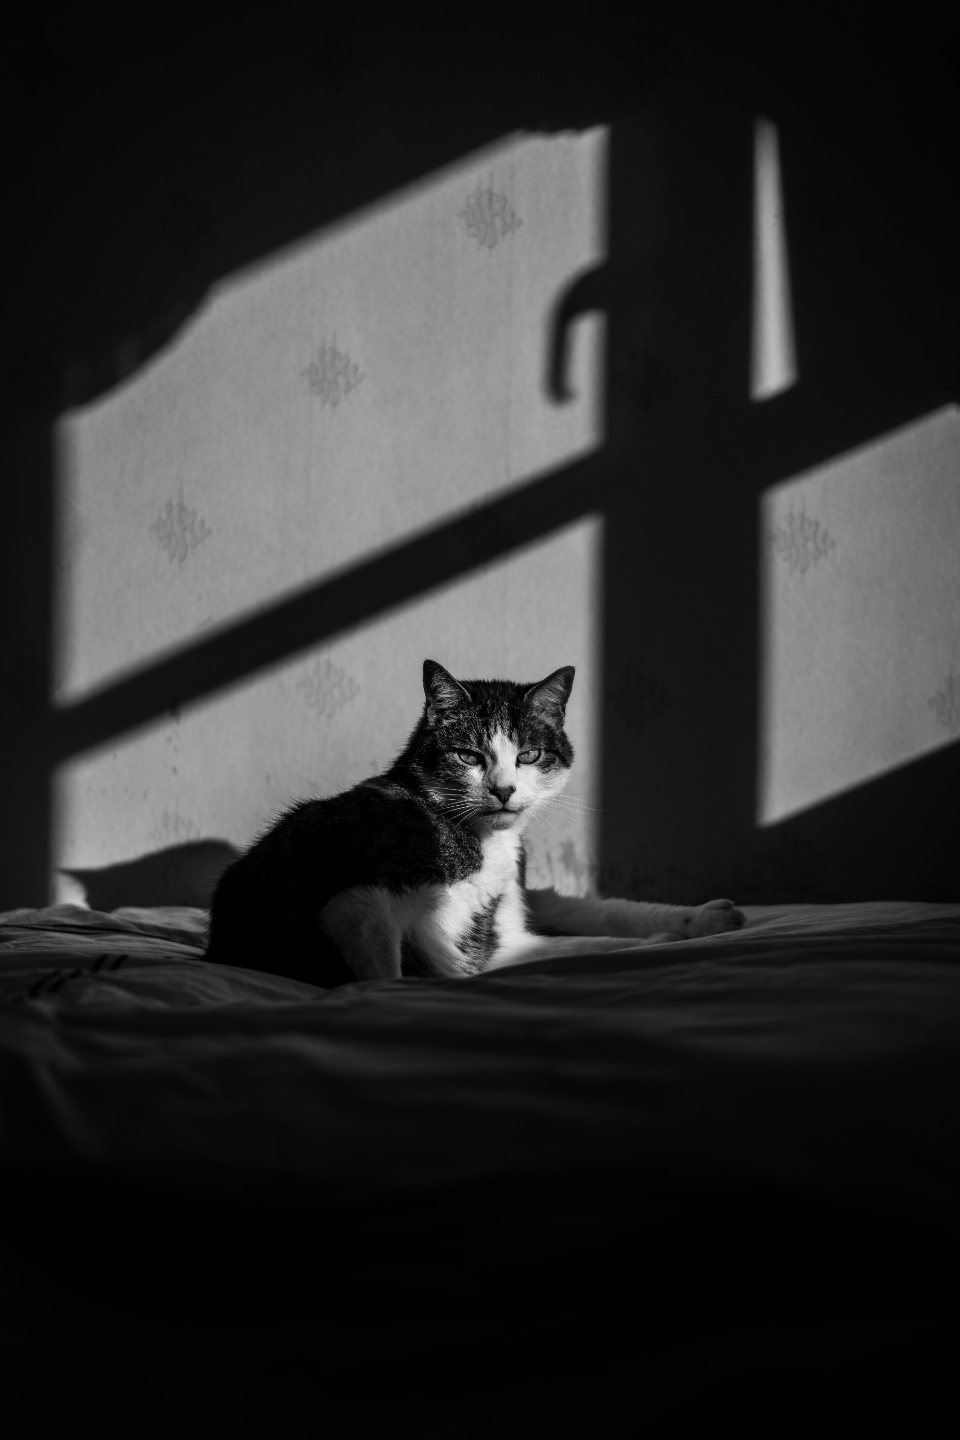 Free stock photo of house cat